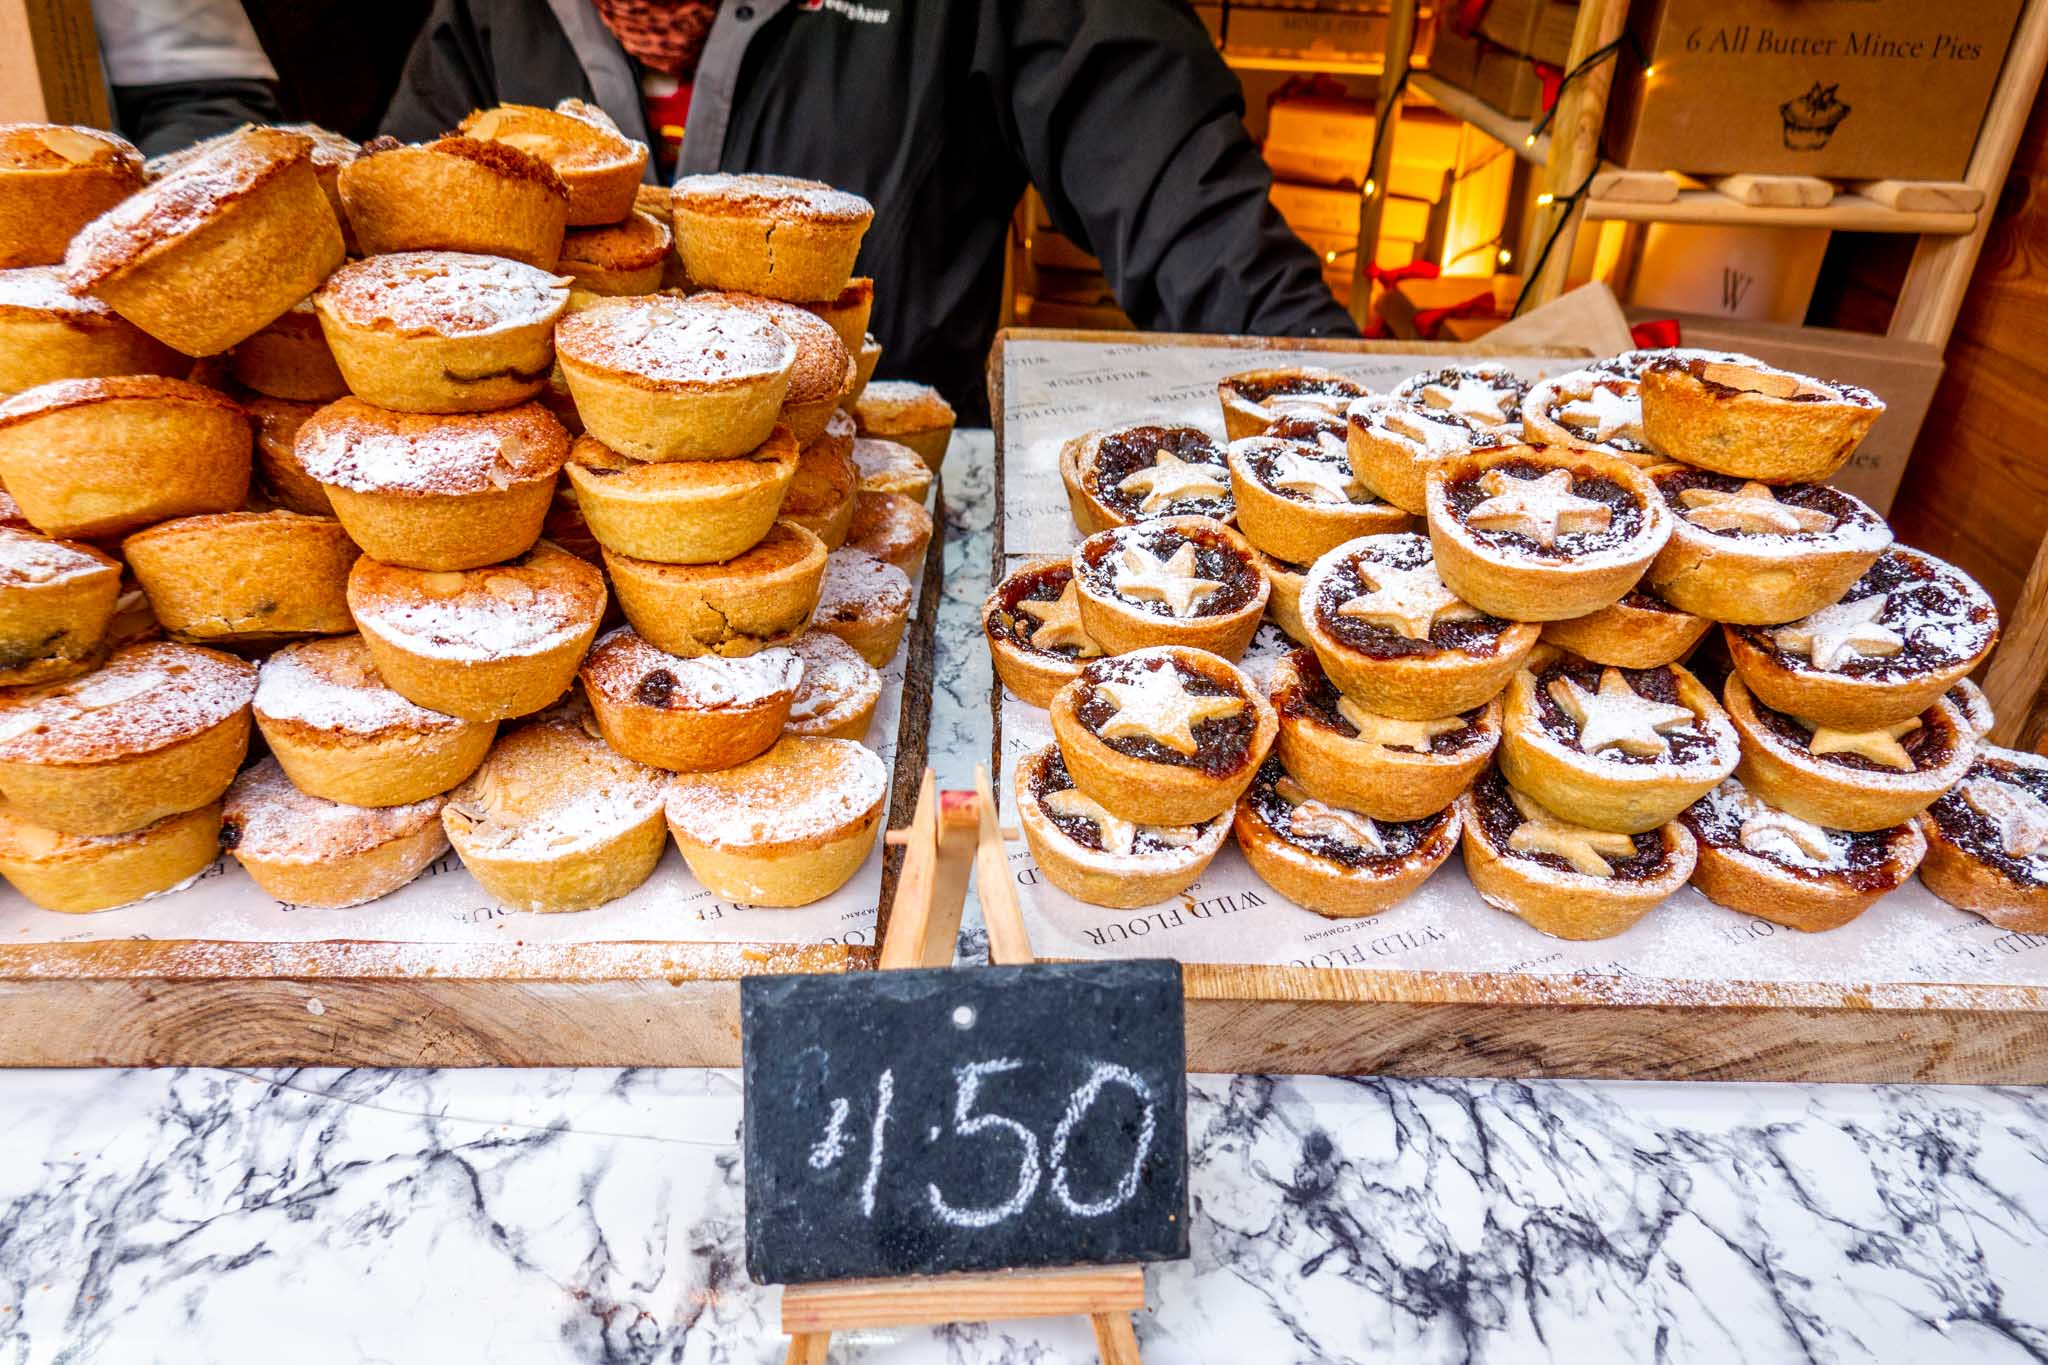 Stacks of small mince pies for sale